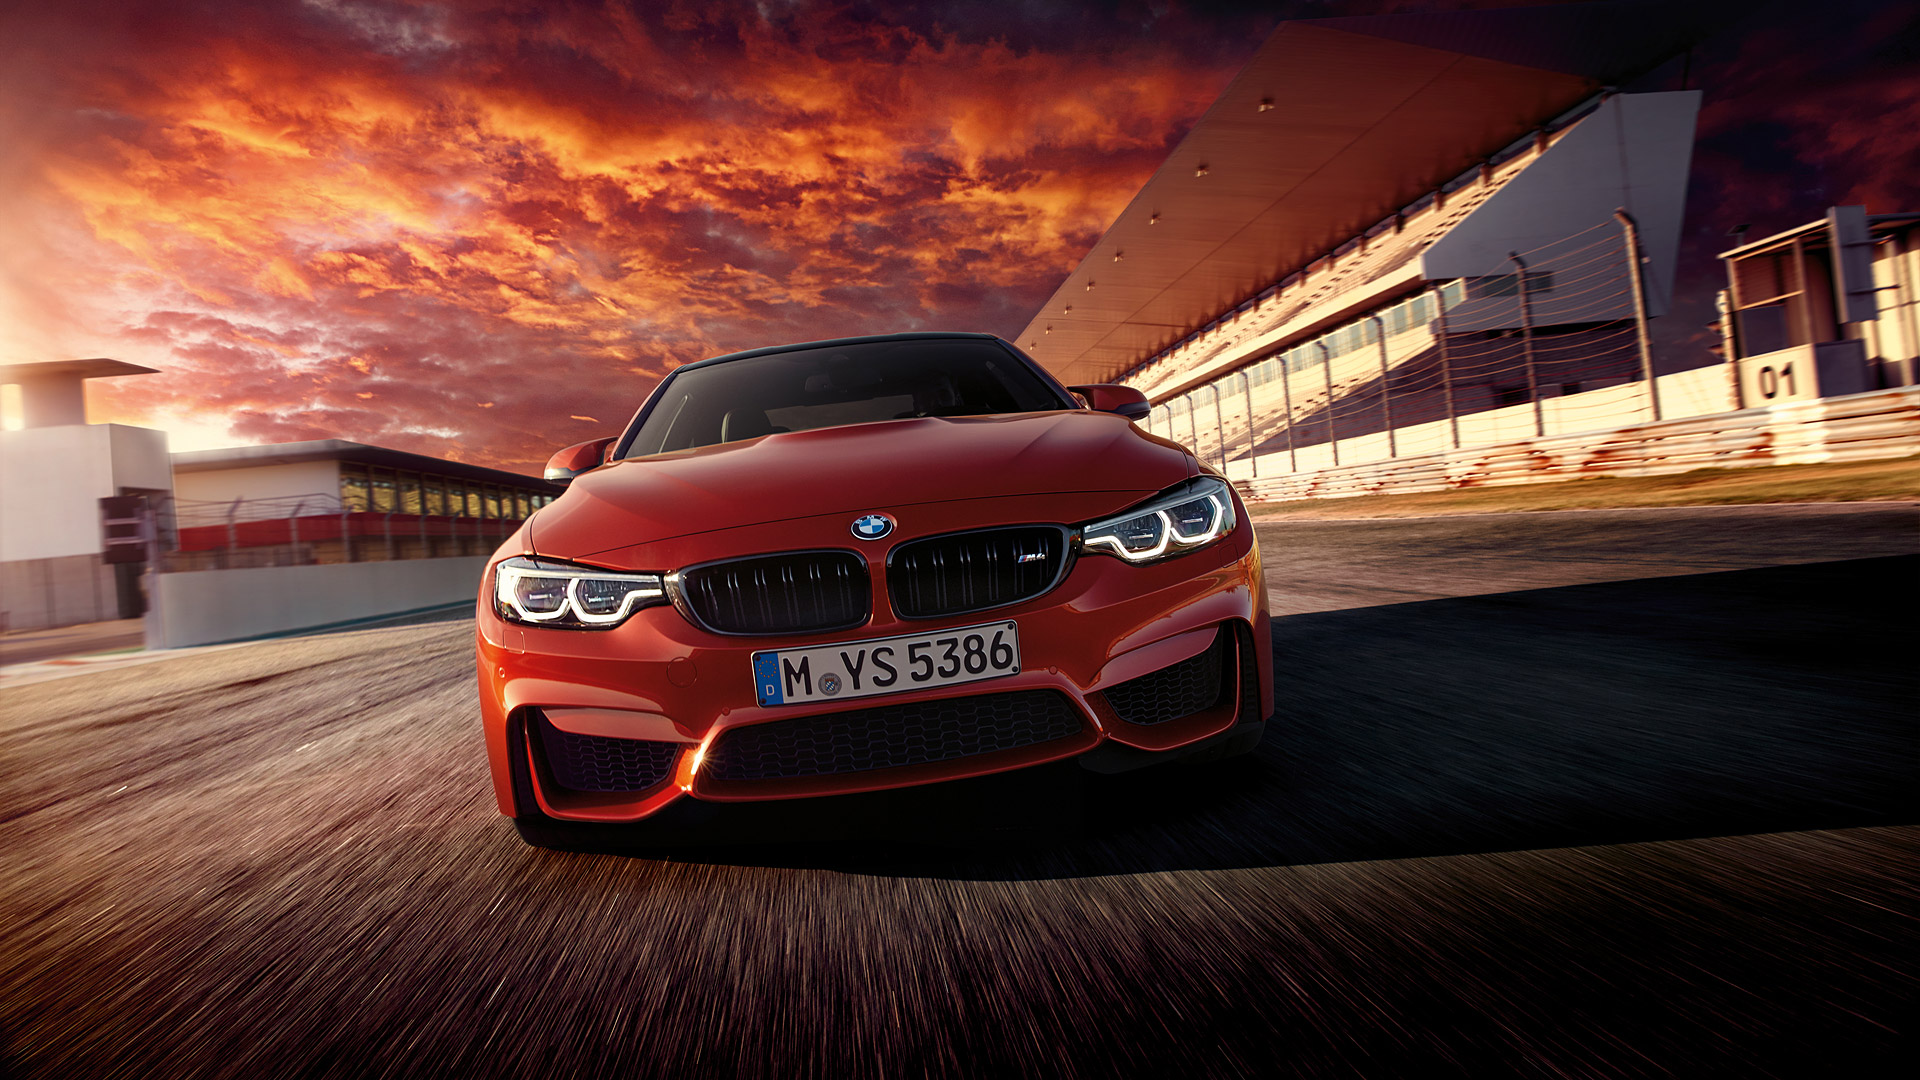 1920x1080 - BMW M4 Wallpapers 4